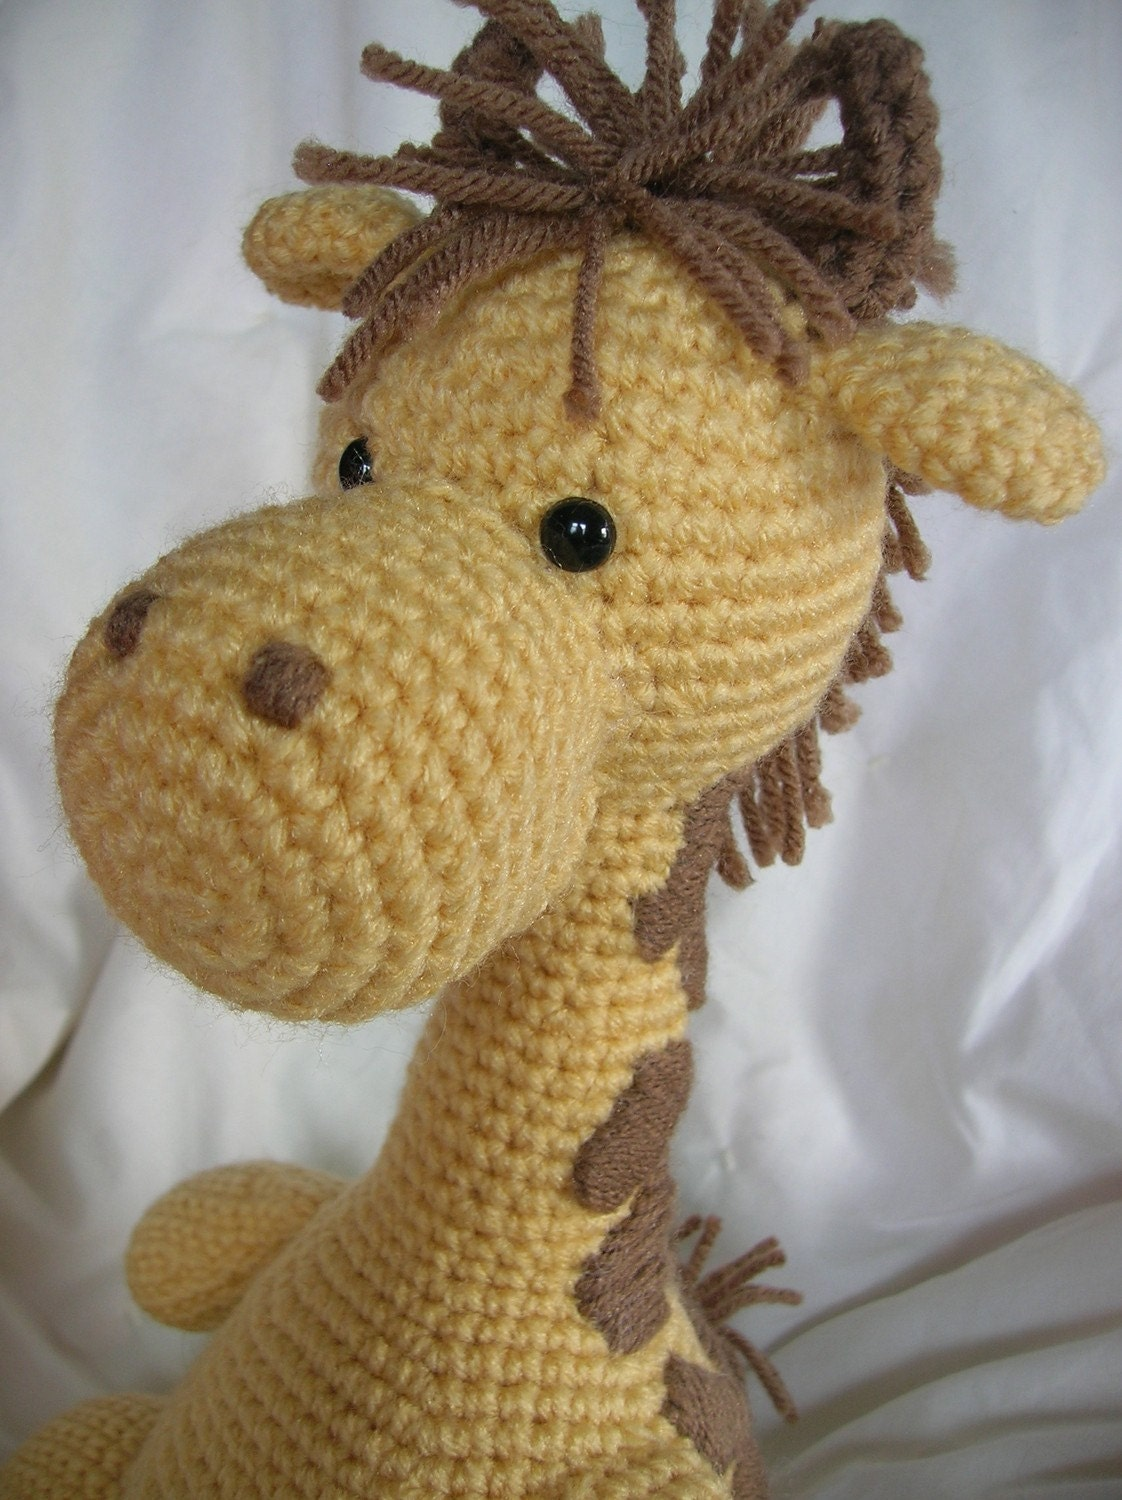 Crochet Giraffe Related Keywords & Suggestions - Crochet ...